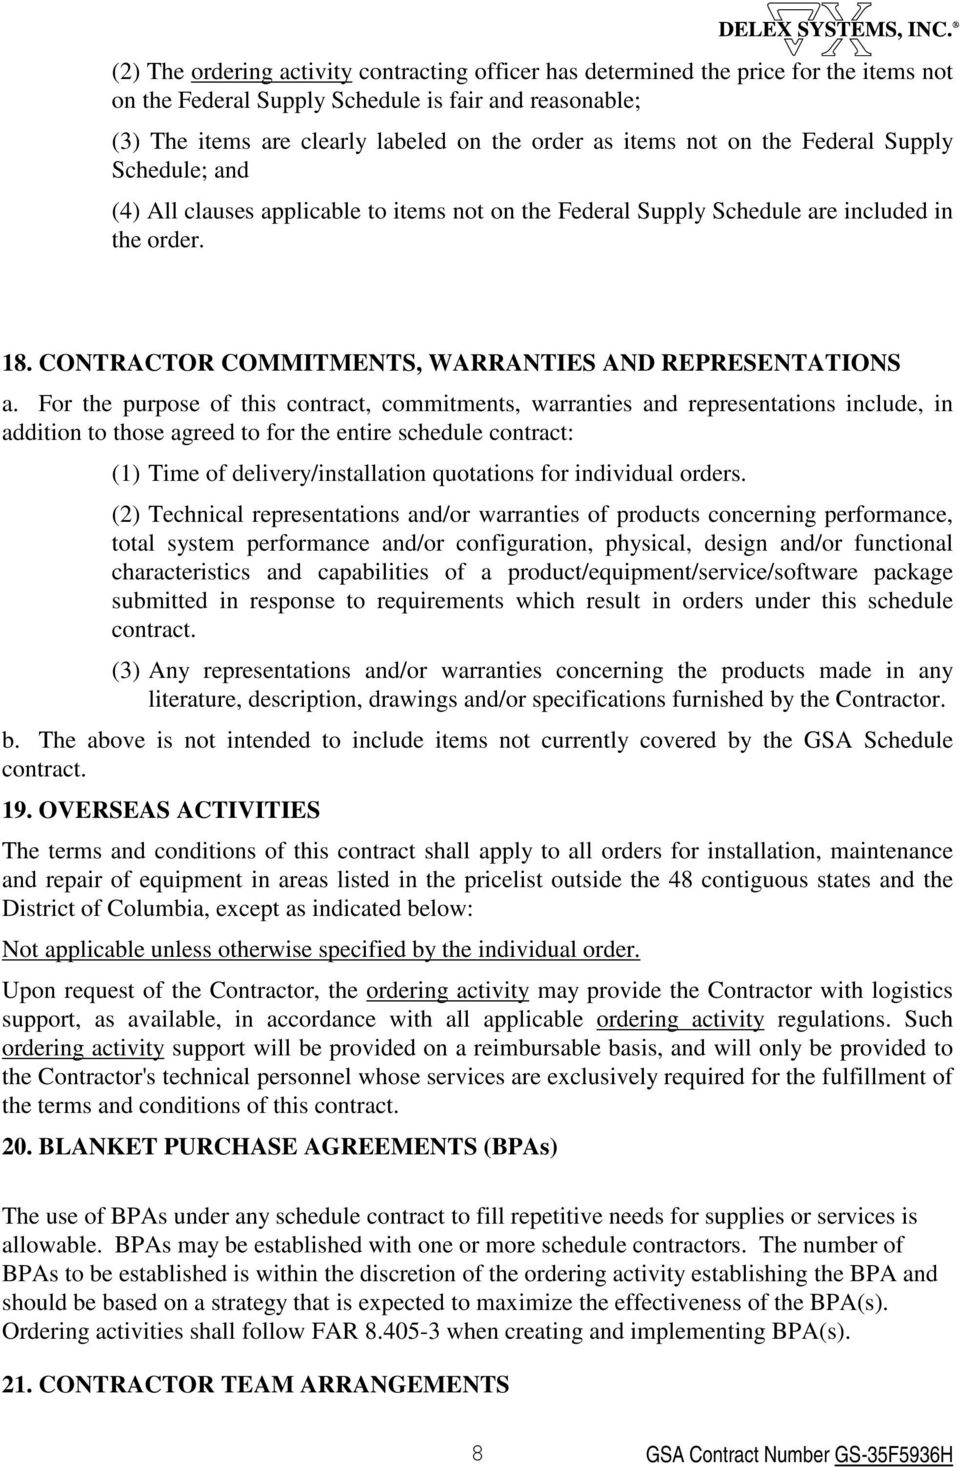 For the purpose of this contract, commitments, warranties and representations include, in addition to those agreed to for the entire schedule contract: (1) Time of delivery/installation quotations